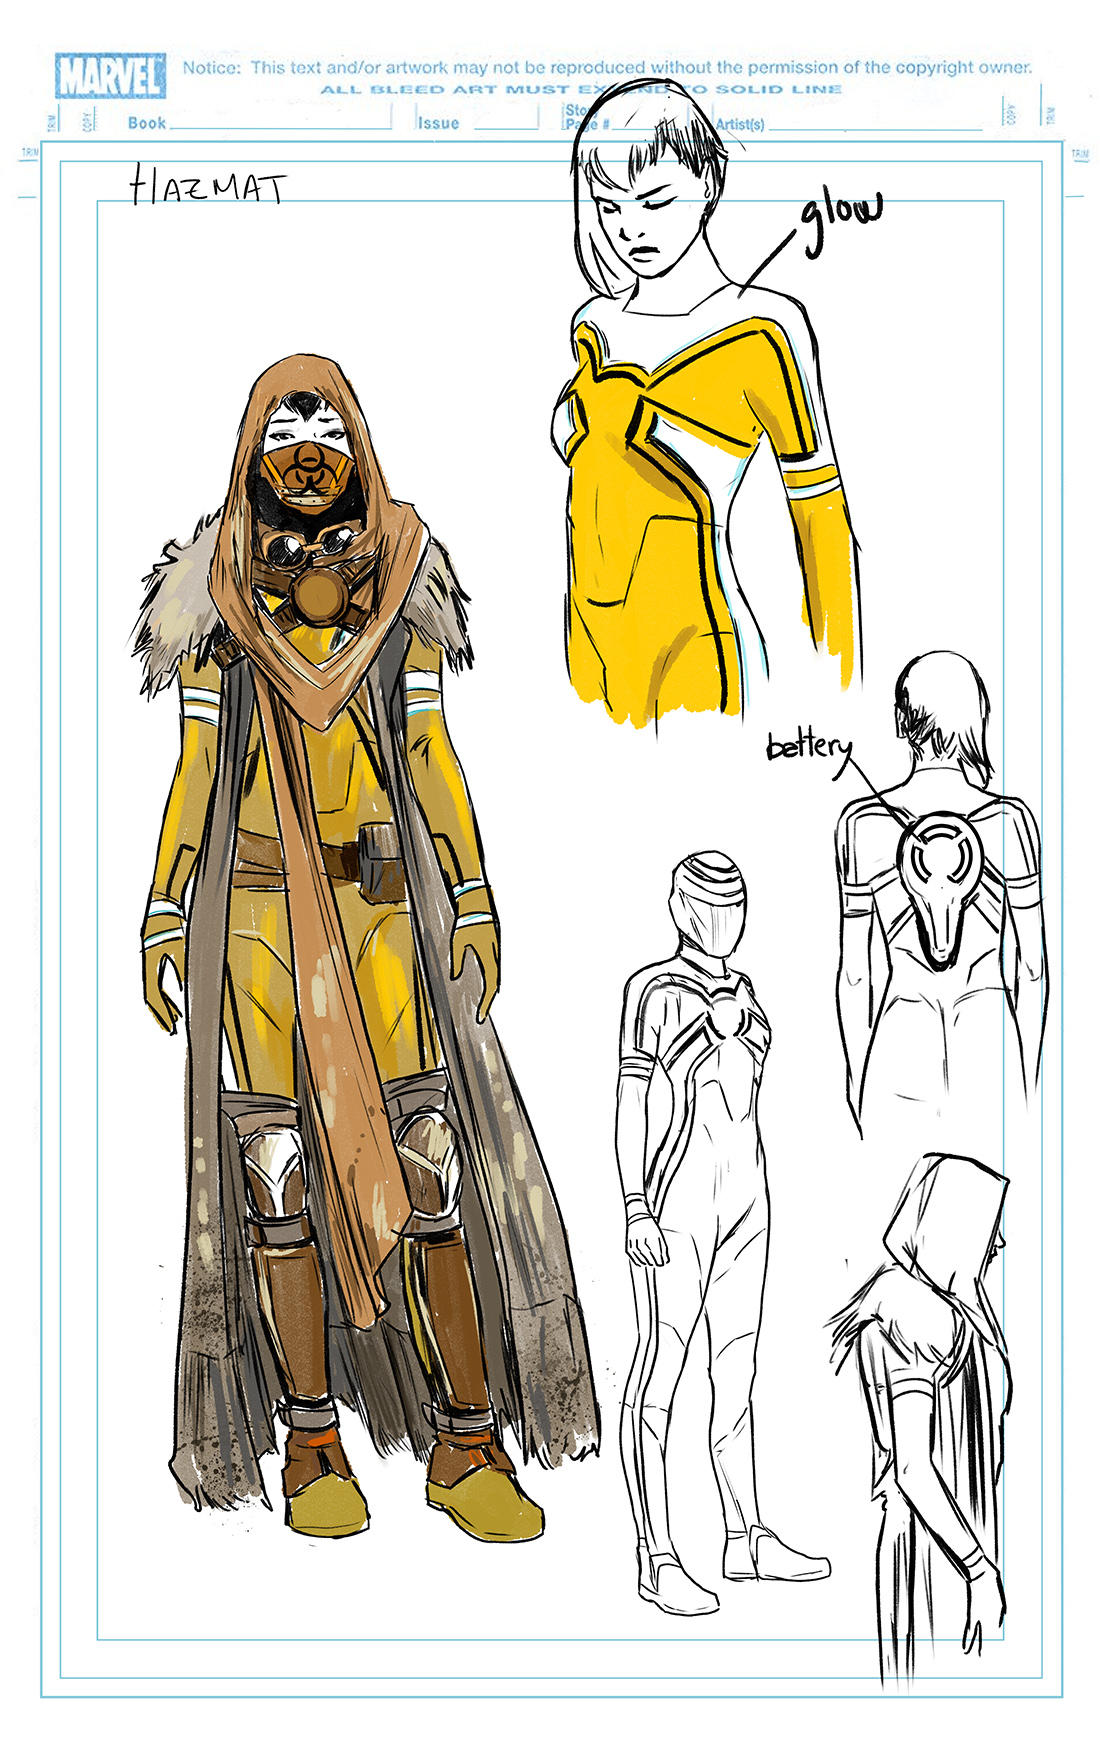 CAPTAIN MARVEL #2: Hazmat design by Carmen Carnero